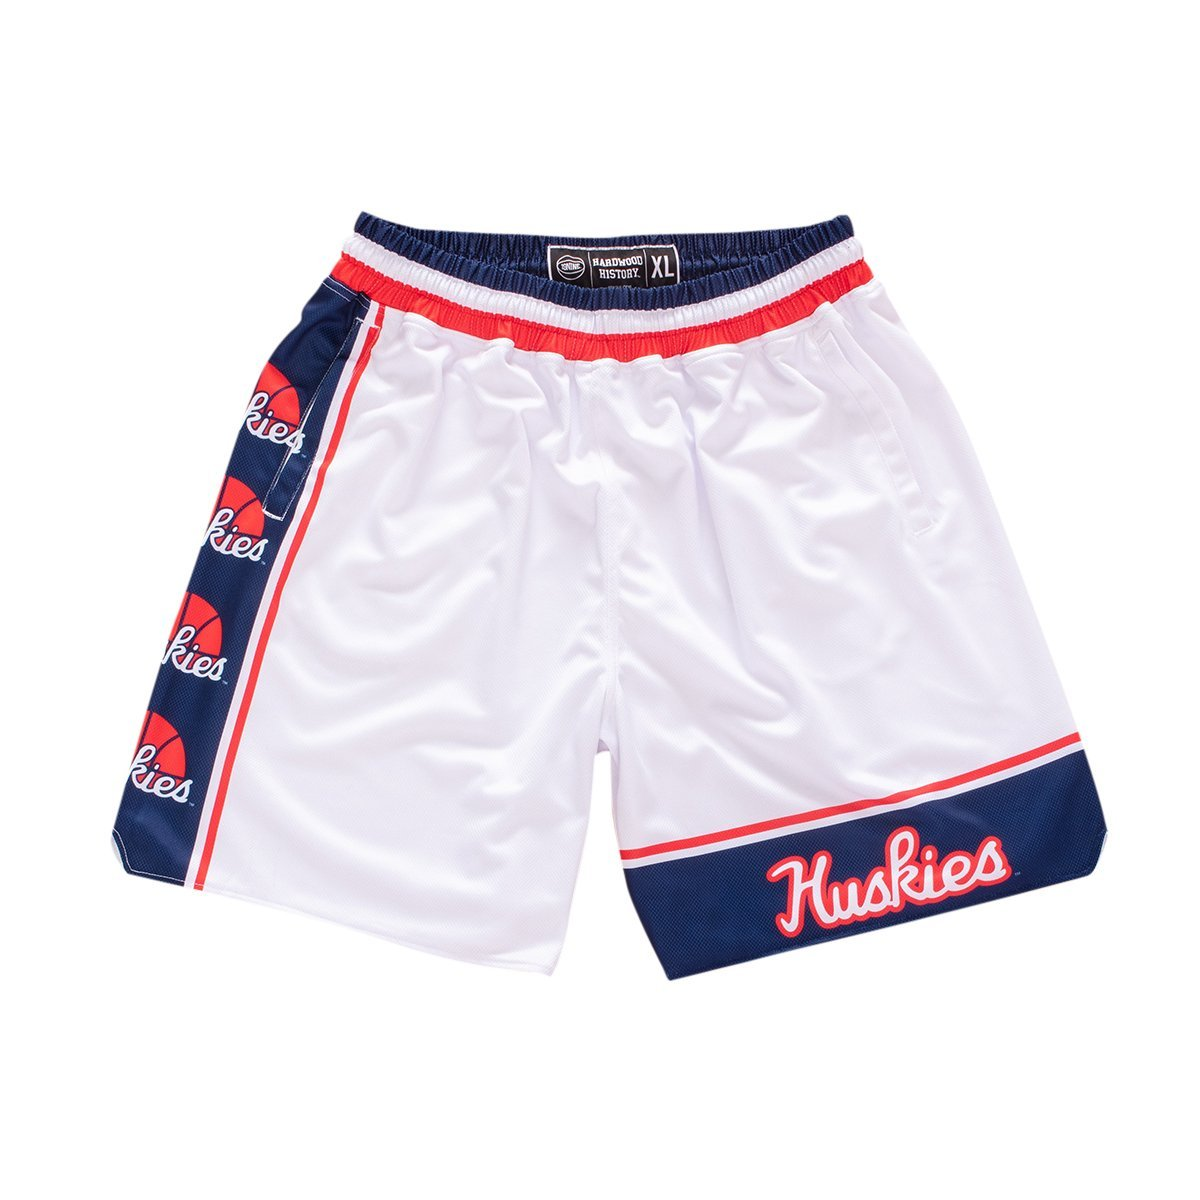 Women's UConn Huskies 1994-1995 Retro Shorts - SLAM